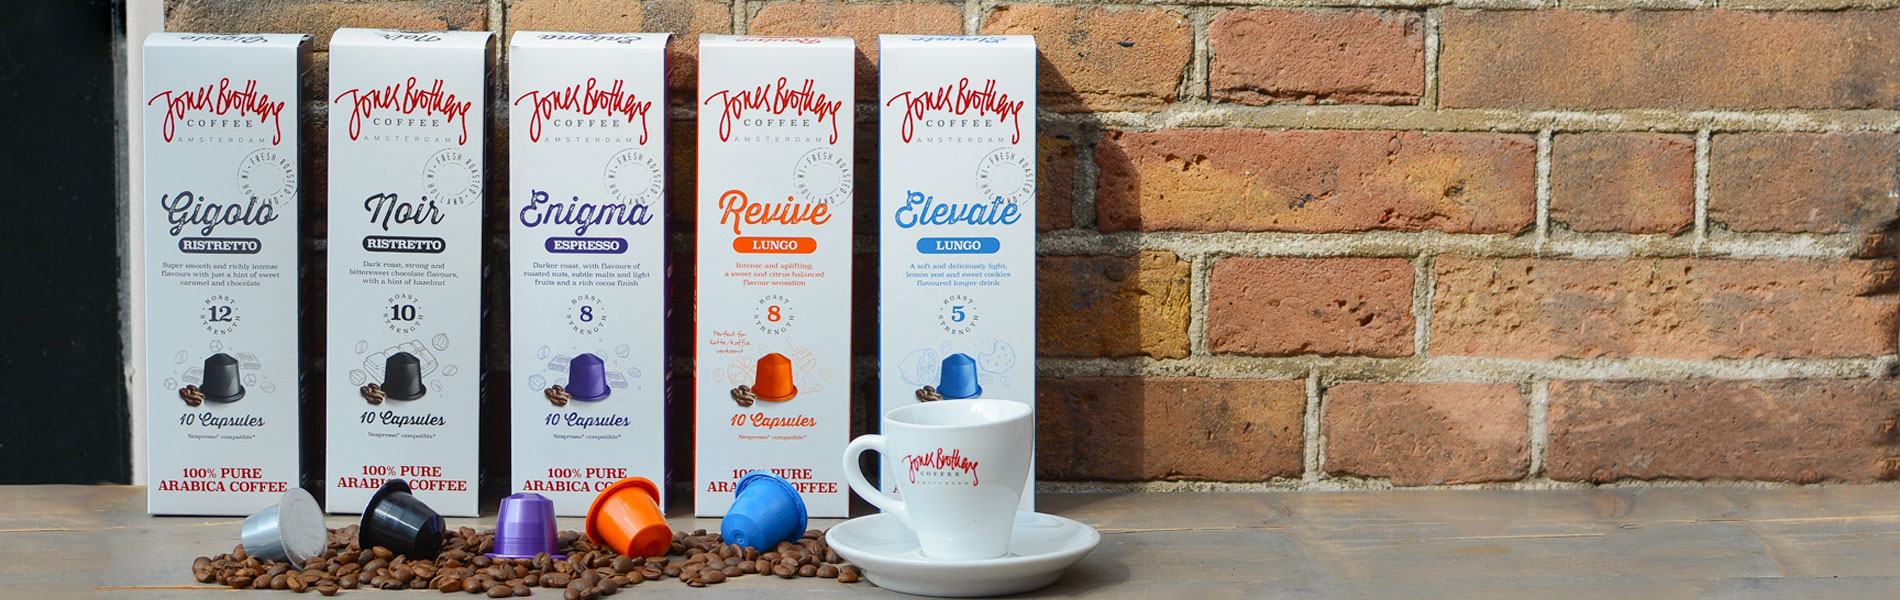 discovery-pack-capsules | Jones Brothers Coffee